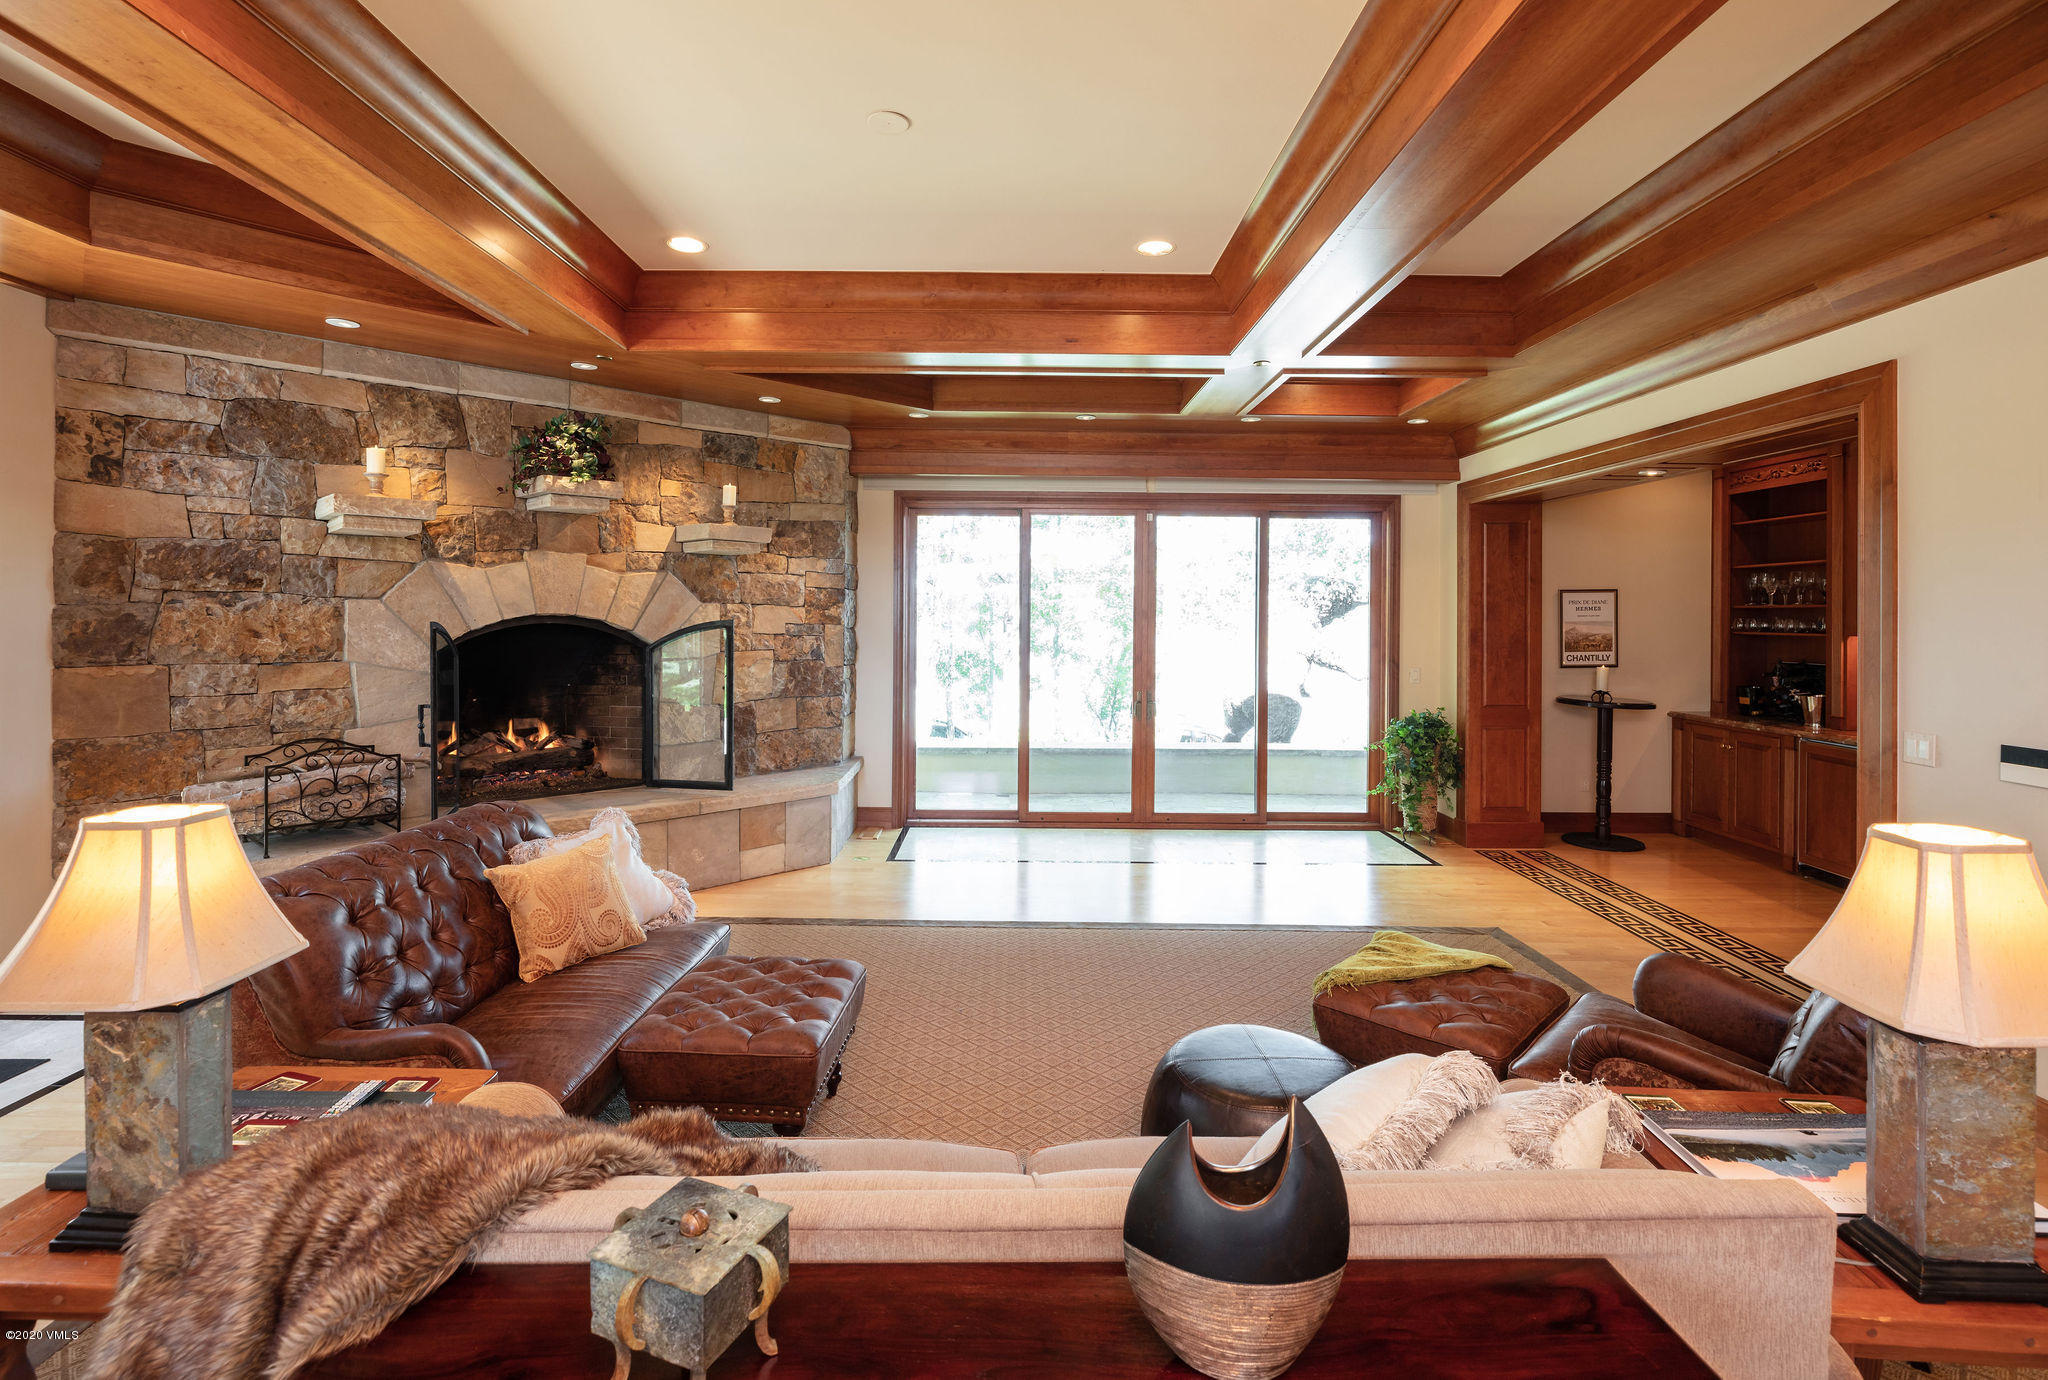 Located within the gates of the Divide at Cordillera, this spectacular custom home is set beautifully on a 2-acre homesite with unobstructed and breathtaking views of the entire Gore Range.  The residence offers one-of-a-kind finishes and fine details including coffered ceilings, custom hardwood flooring inlays, interior stone columns, spacious double offices with fine wood built-ins, and his and hers master baths and closets.  Four guests suites are found on the upper floor, accessible by elevator which services all three levels.  Floor to ceiling windows on the main level bring in the morning sun and views of the enormous back yard overlooking the entire upper Vail Valley. Surrounded by lush landscaping and stone patios, the home provides the space you need and the comfort you want, both inside and out. There are several outdoor seating and gathering areas, a fire pit area with a separate stone patio, and a one-bedroom apartment on the lower level with its own private patio and grilling station.  All areas of the home are fortunate to encompass the perfect views of the majestic Gore Range.  Perfect for the current buyer looking for a family refuge with plenty of space for work, play, at-home schooling, extended family, outdoor spaces and privacy.